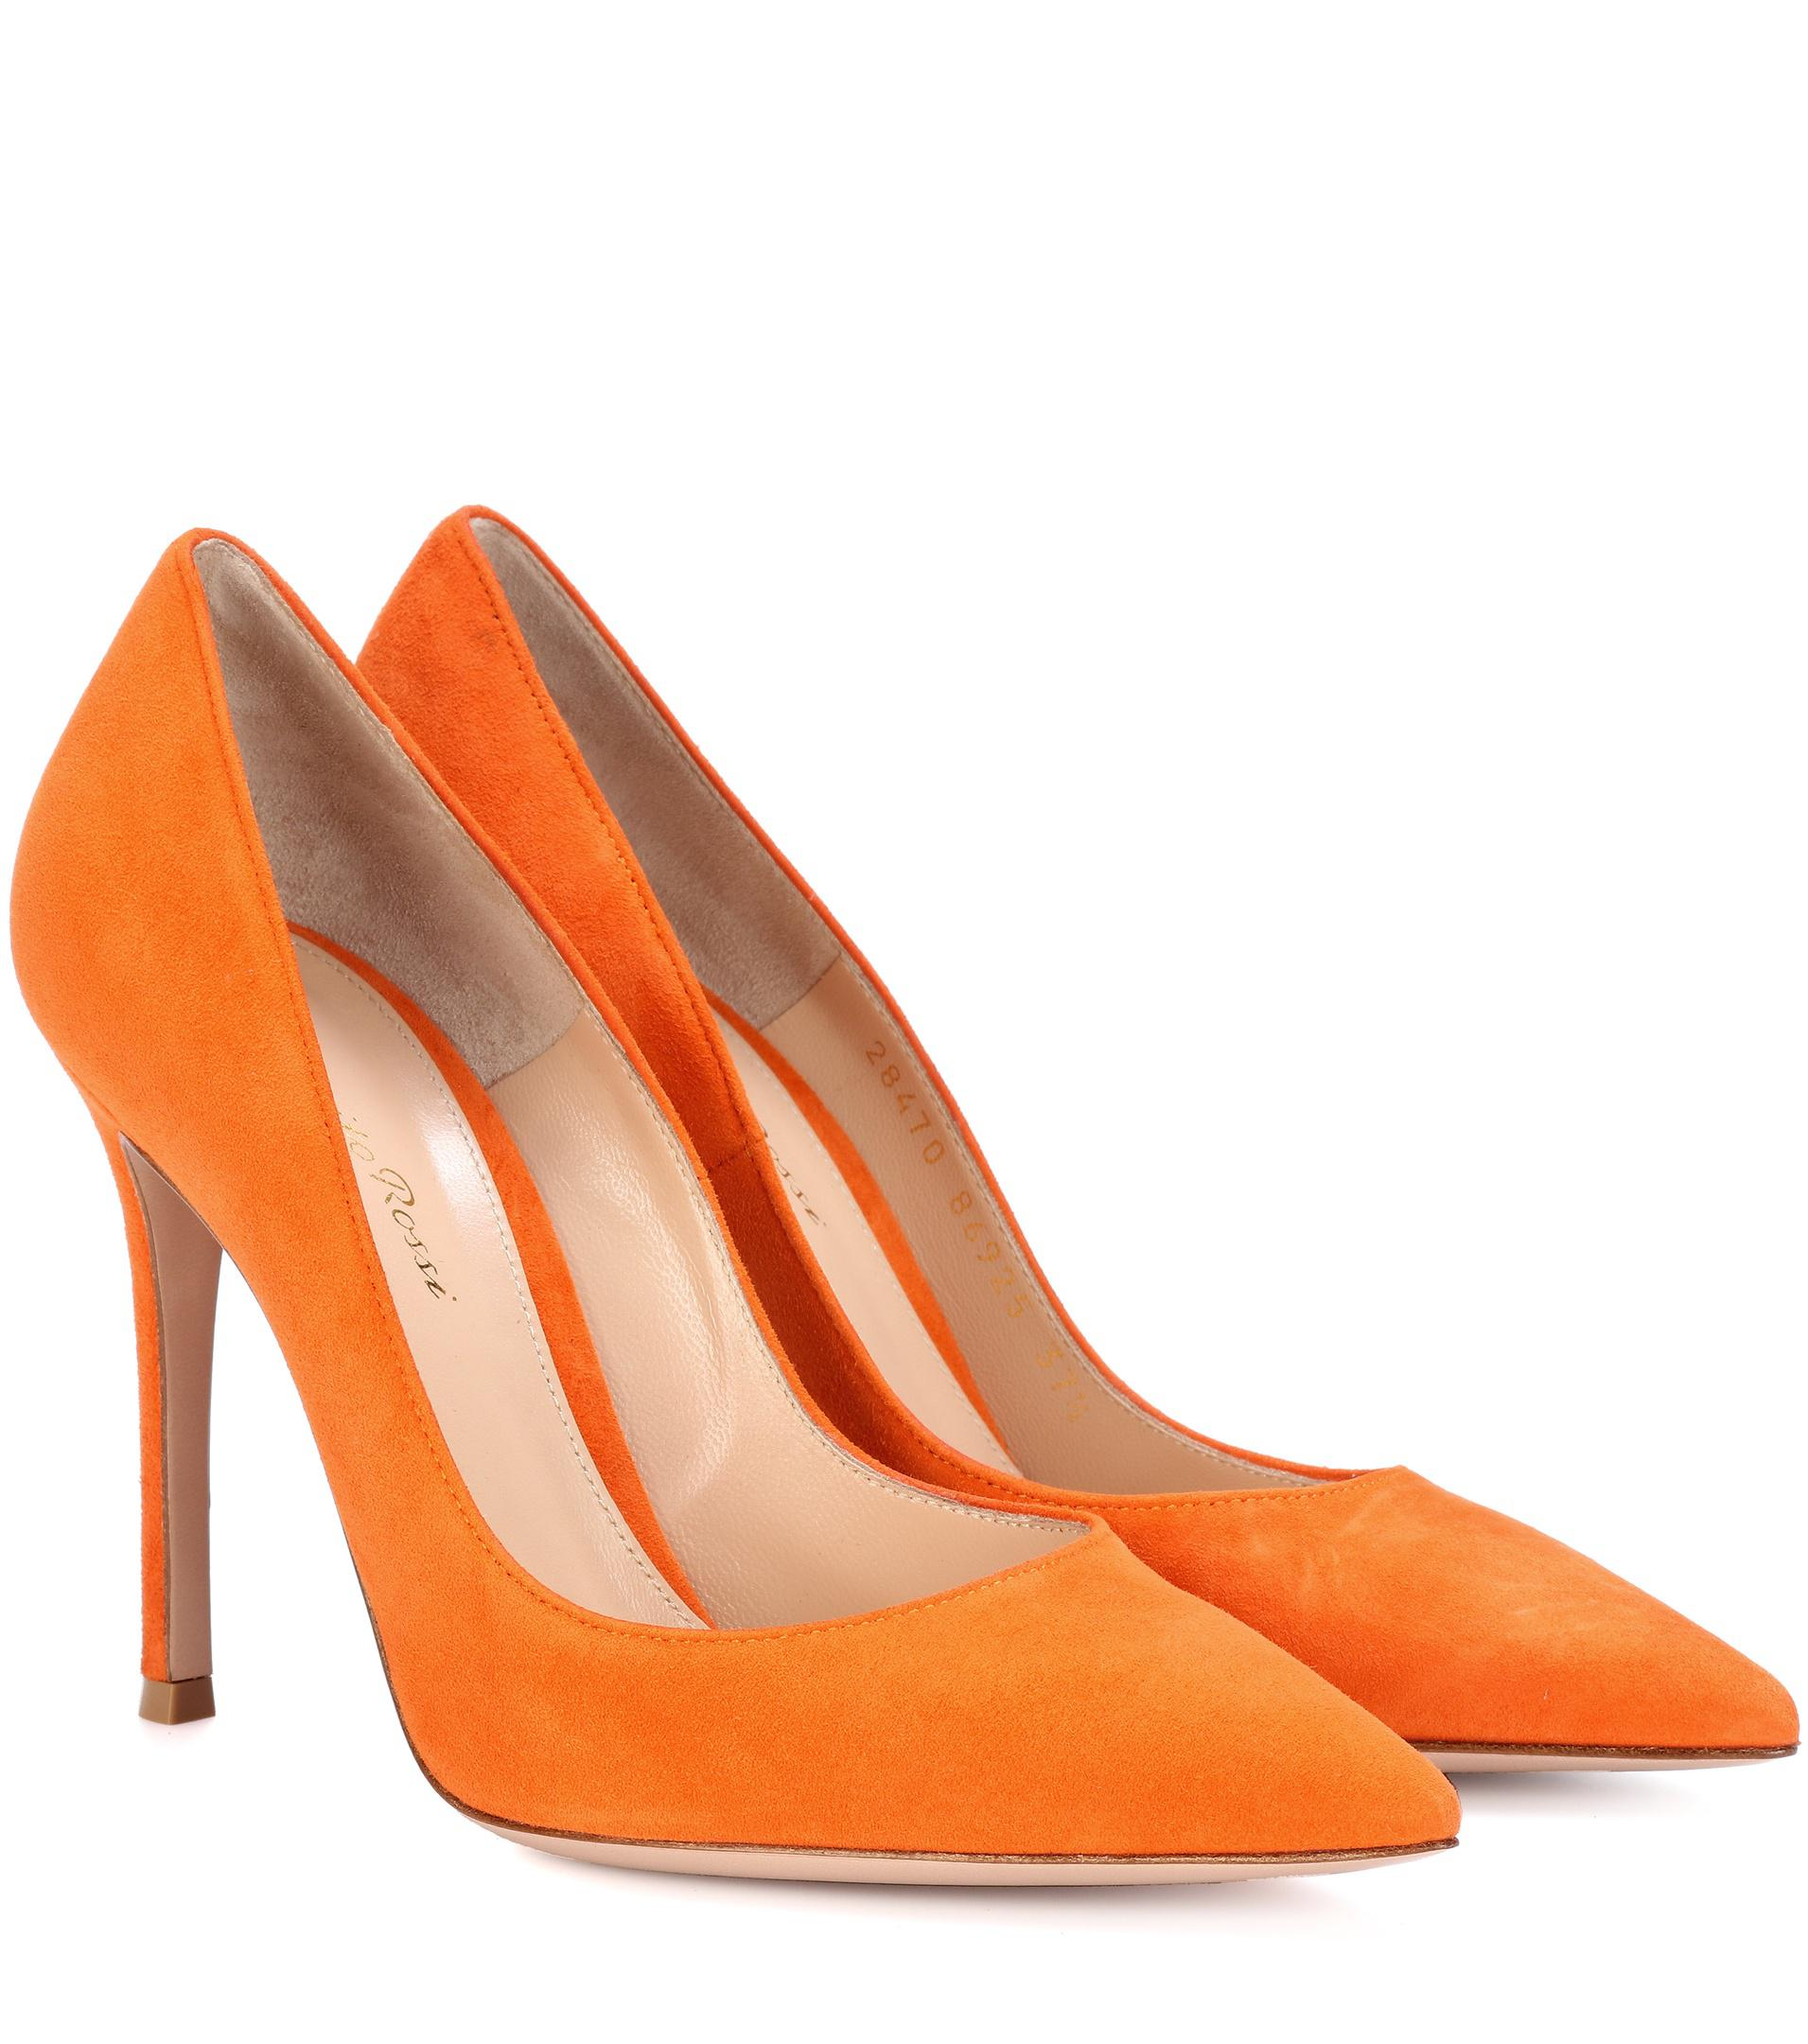 free shipping footaction outlet browse Gianvito Rossi Orange Suede Cut ... EMRRVl8f